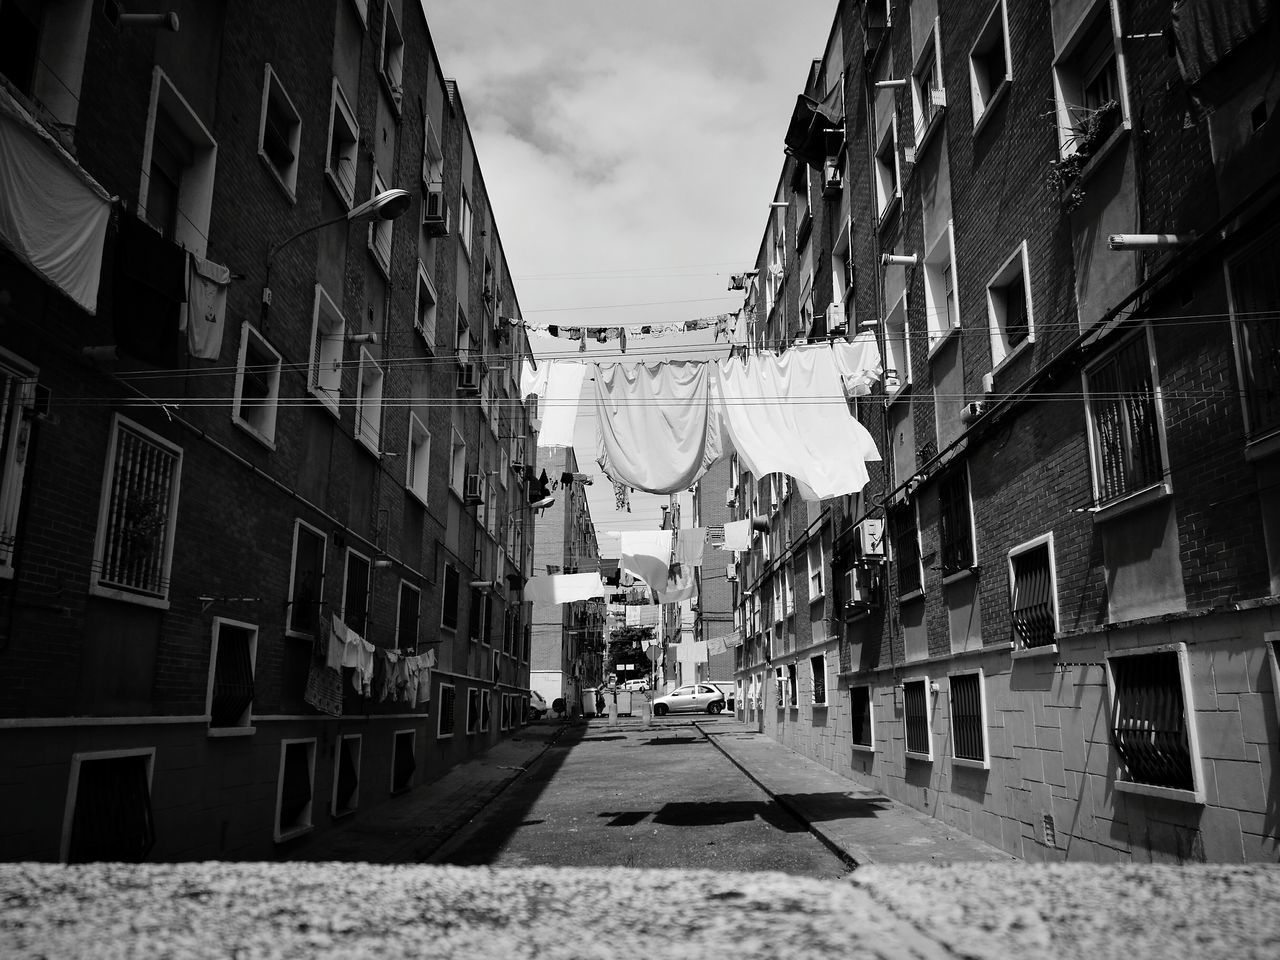 Black & White Building Exterior Clothes Line Architecture Day Built Structure Outdoors Sky No People City HuaweiP9 Madrid Madrid Spain Neighbors Neighborhood Life